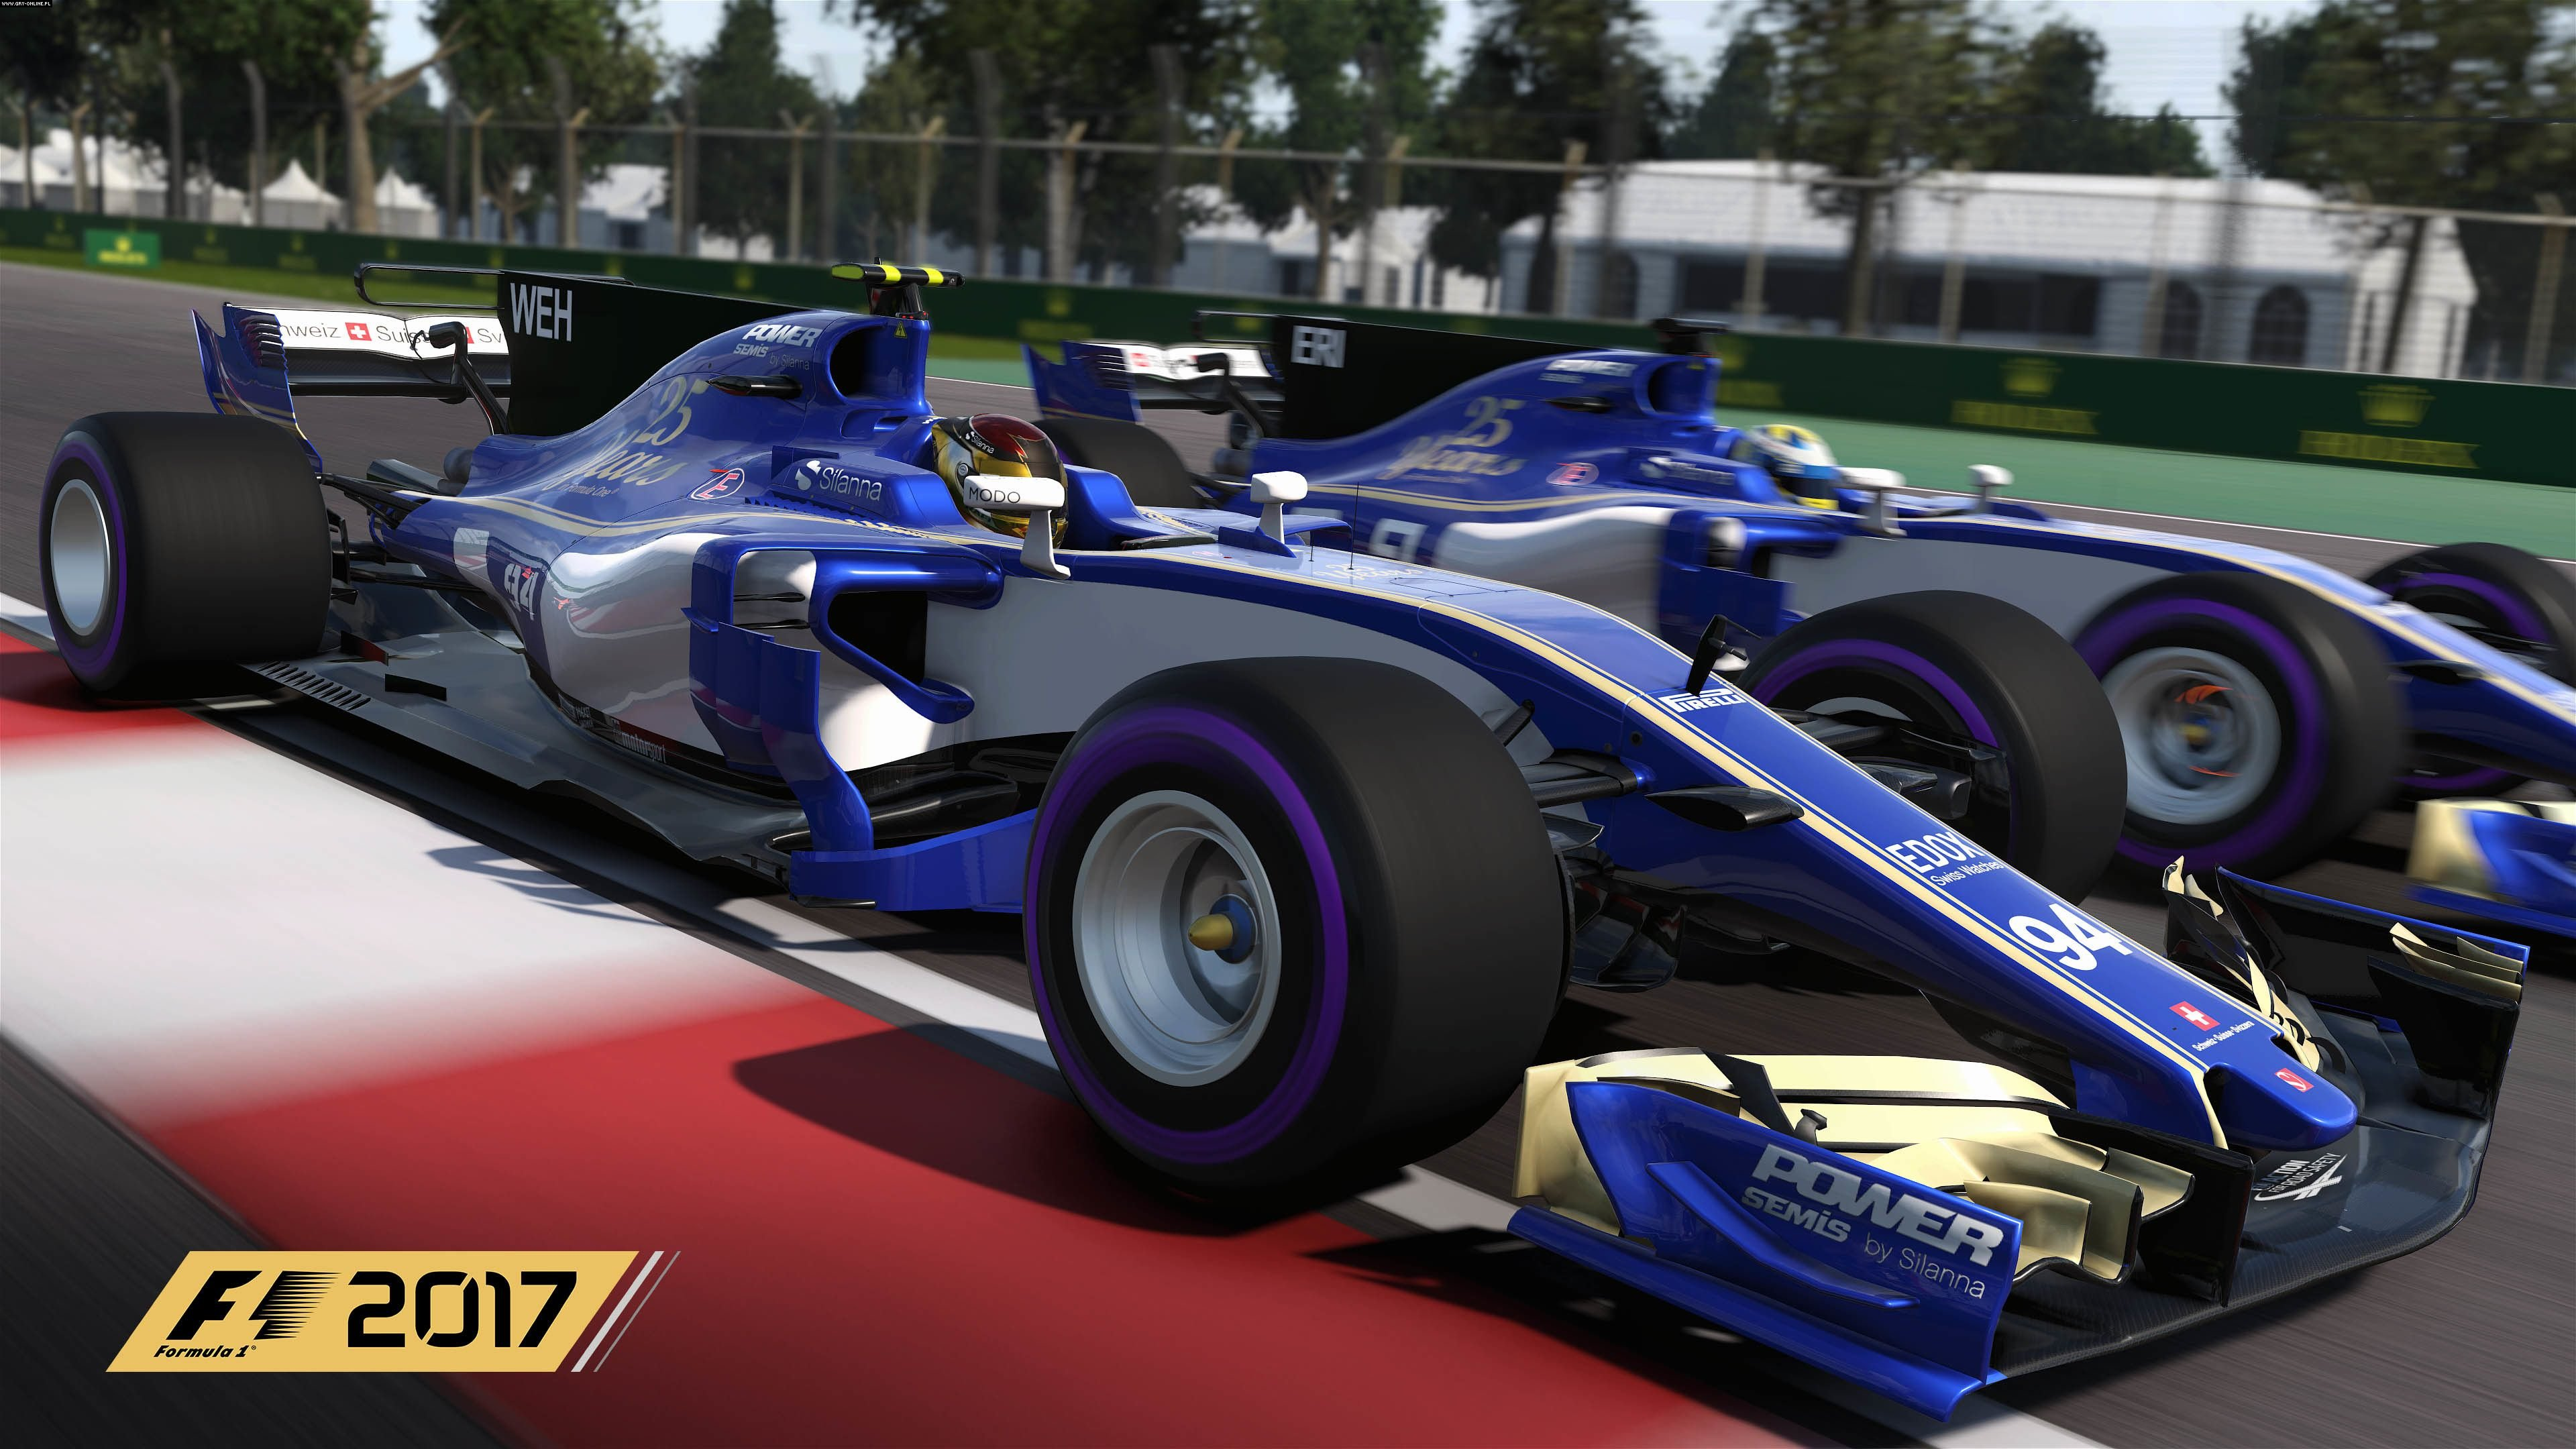 F1 2017 PC, PS4, XONE Games Image 9/31, Codemasters Software